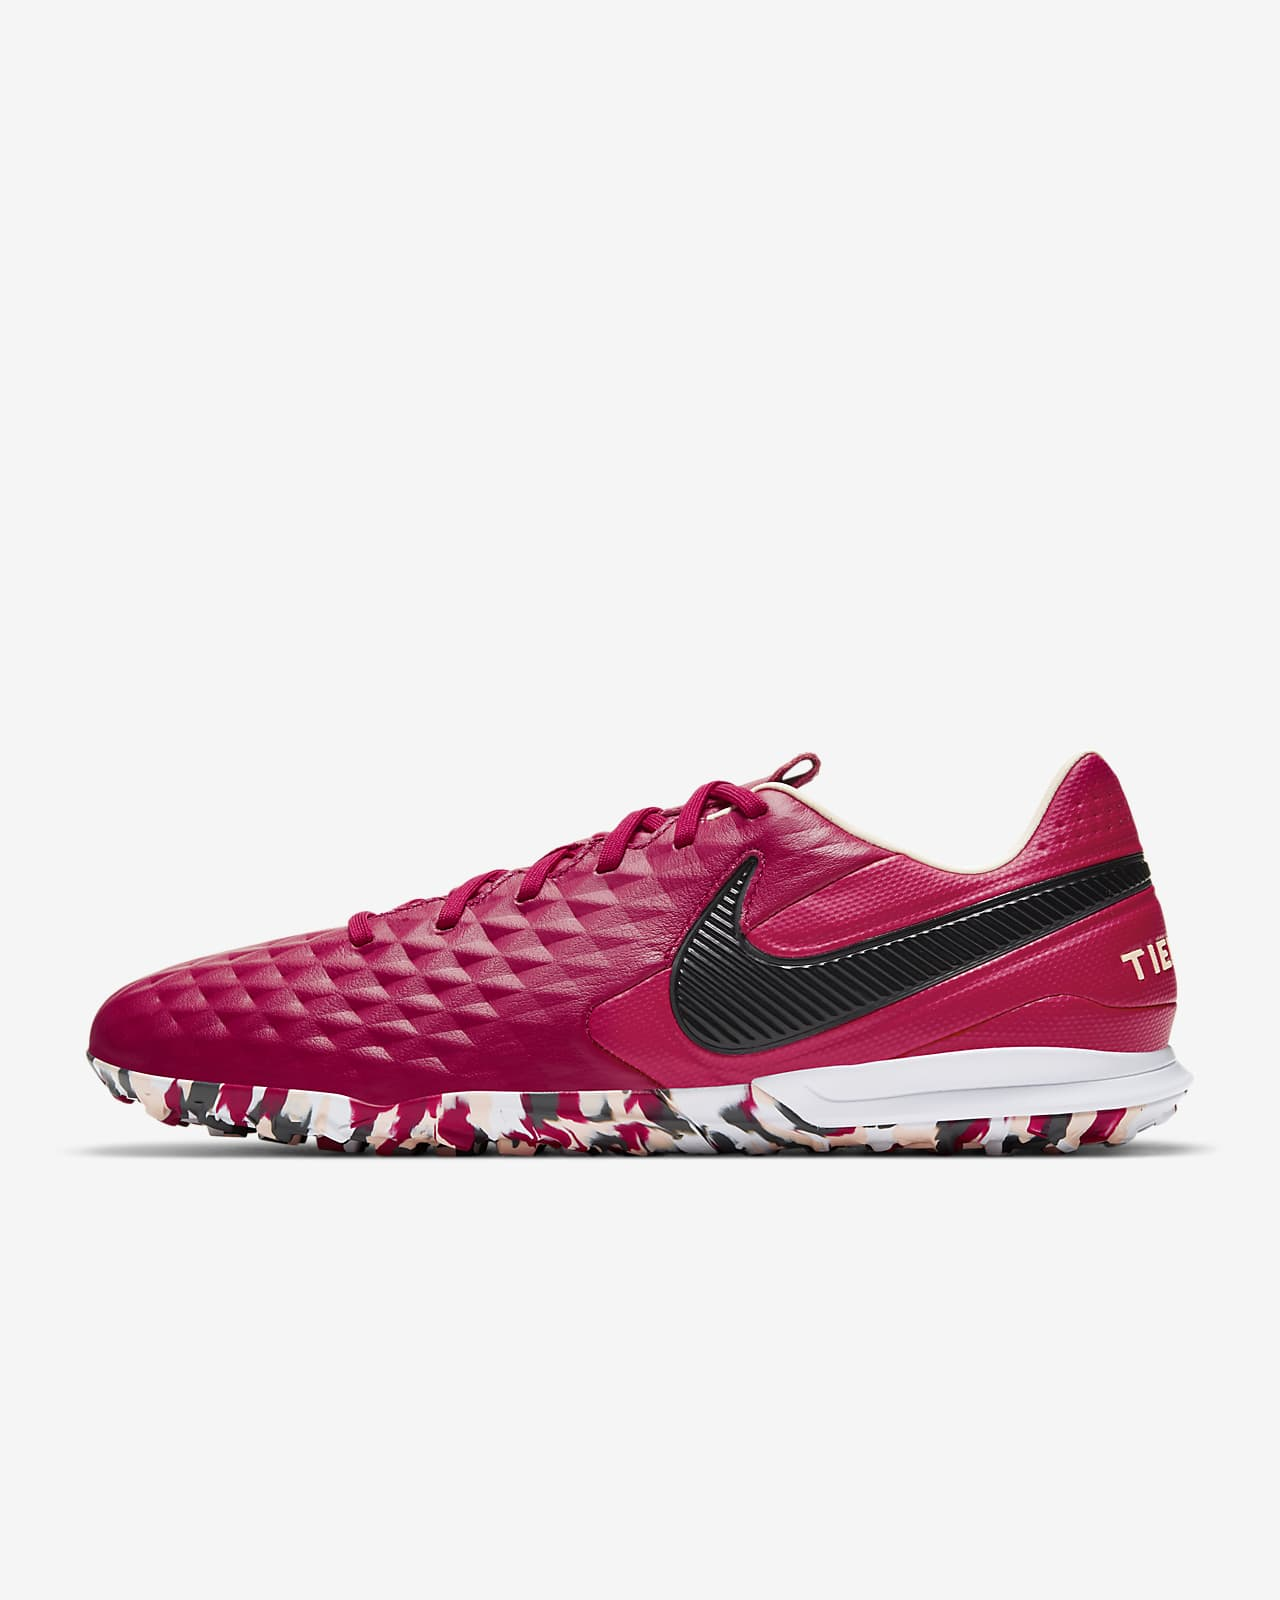 Nike Tiempo Legend 8 Pro TF Artificial-Turf Football Shoe